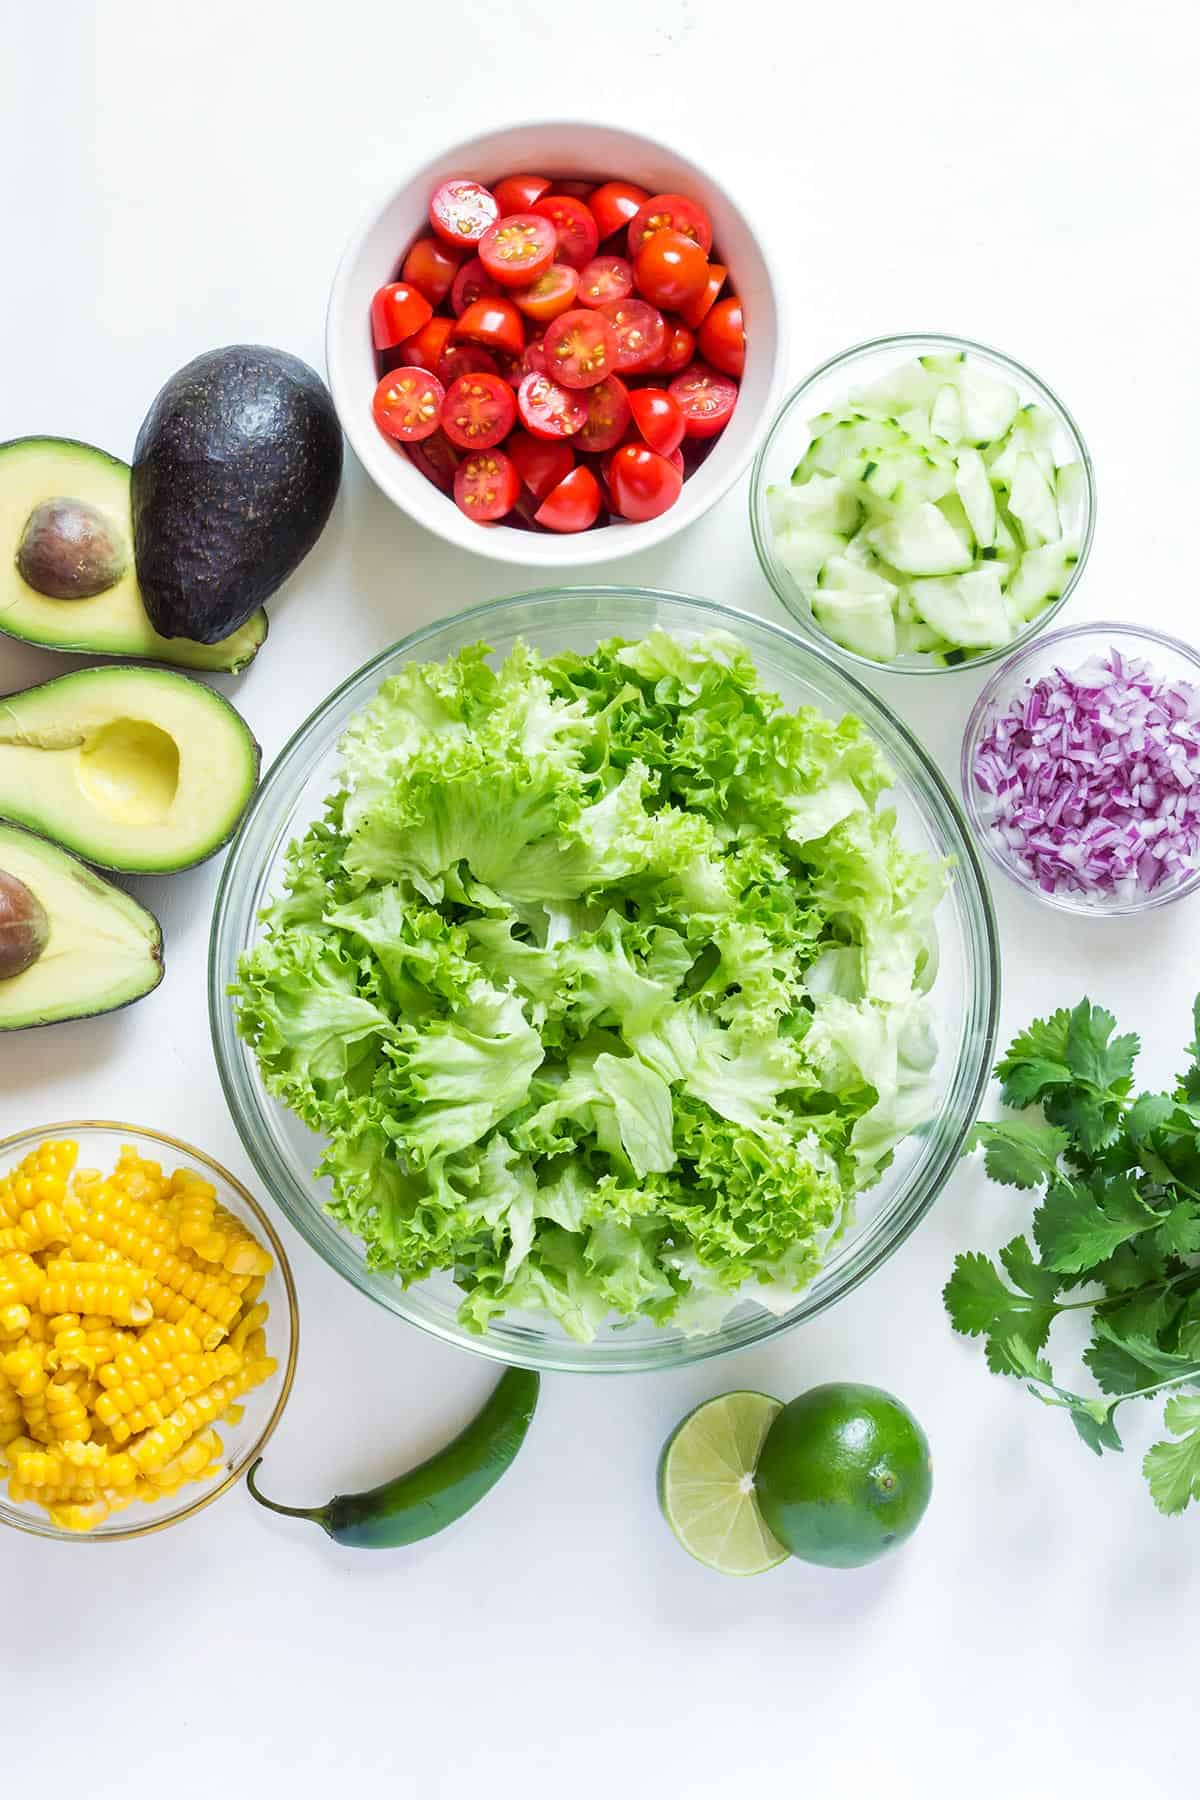 Avocado Corn Salad ingredients in individual bowls